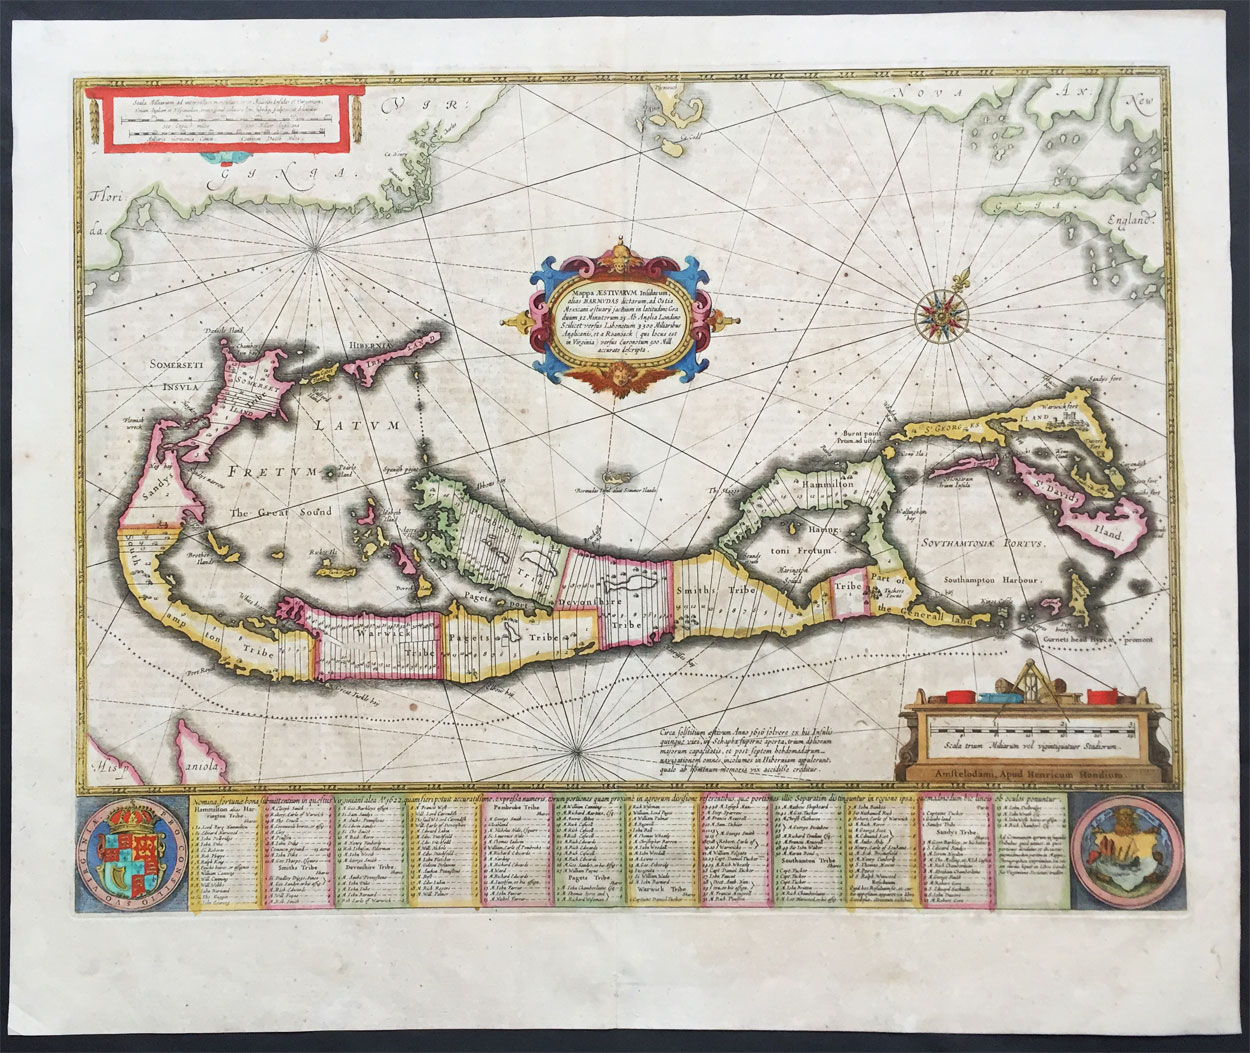 Buy Antique Maps Historical Atlases World Maps Cartography And - Antique maps for sale australia